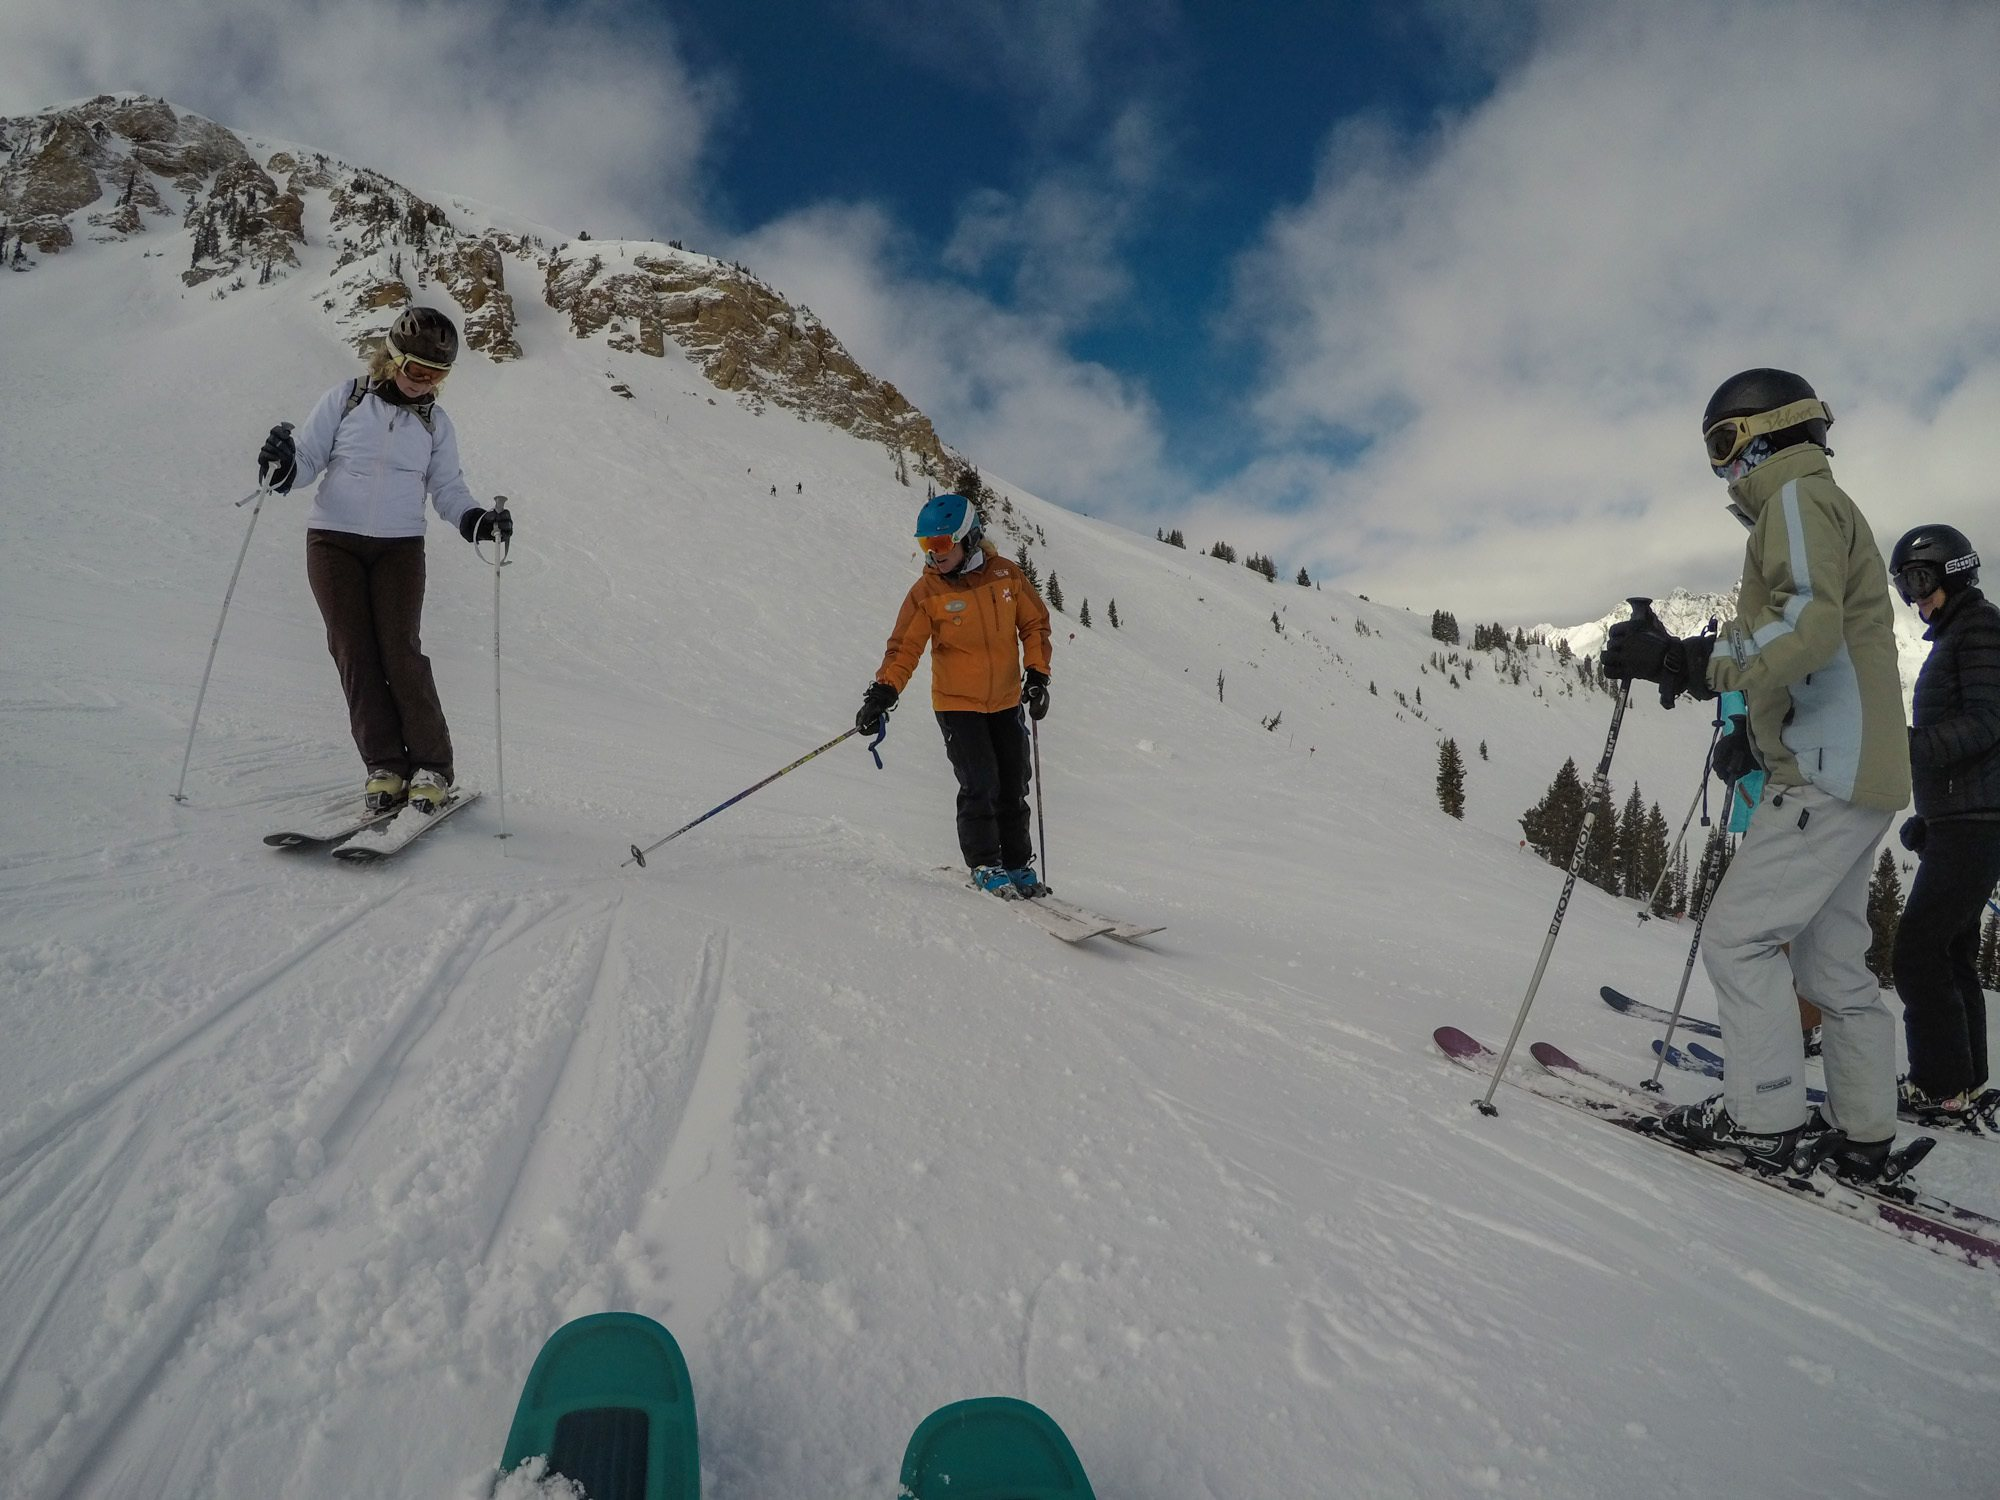 Want to improve your ski skills? The 3-day Alta Lodge Women's Ski Camp offers world-class instruction with a supportive group of females.